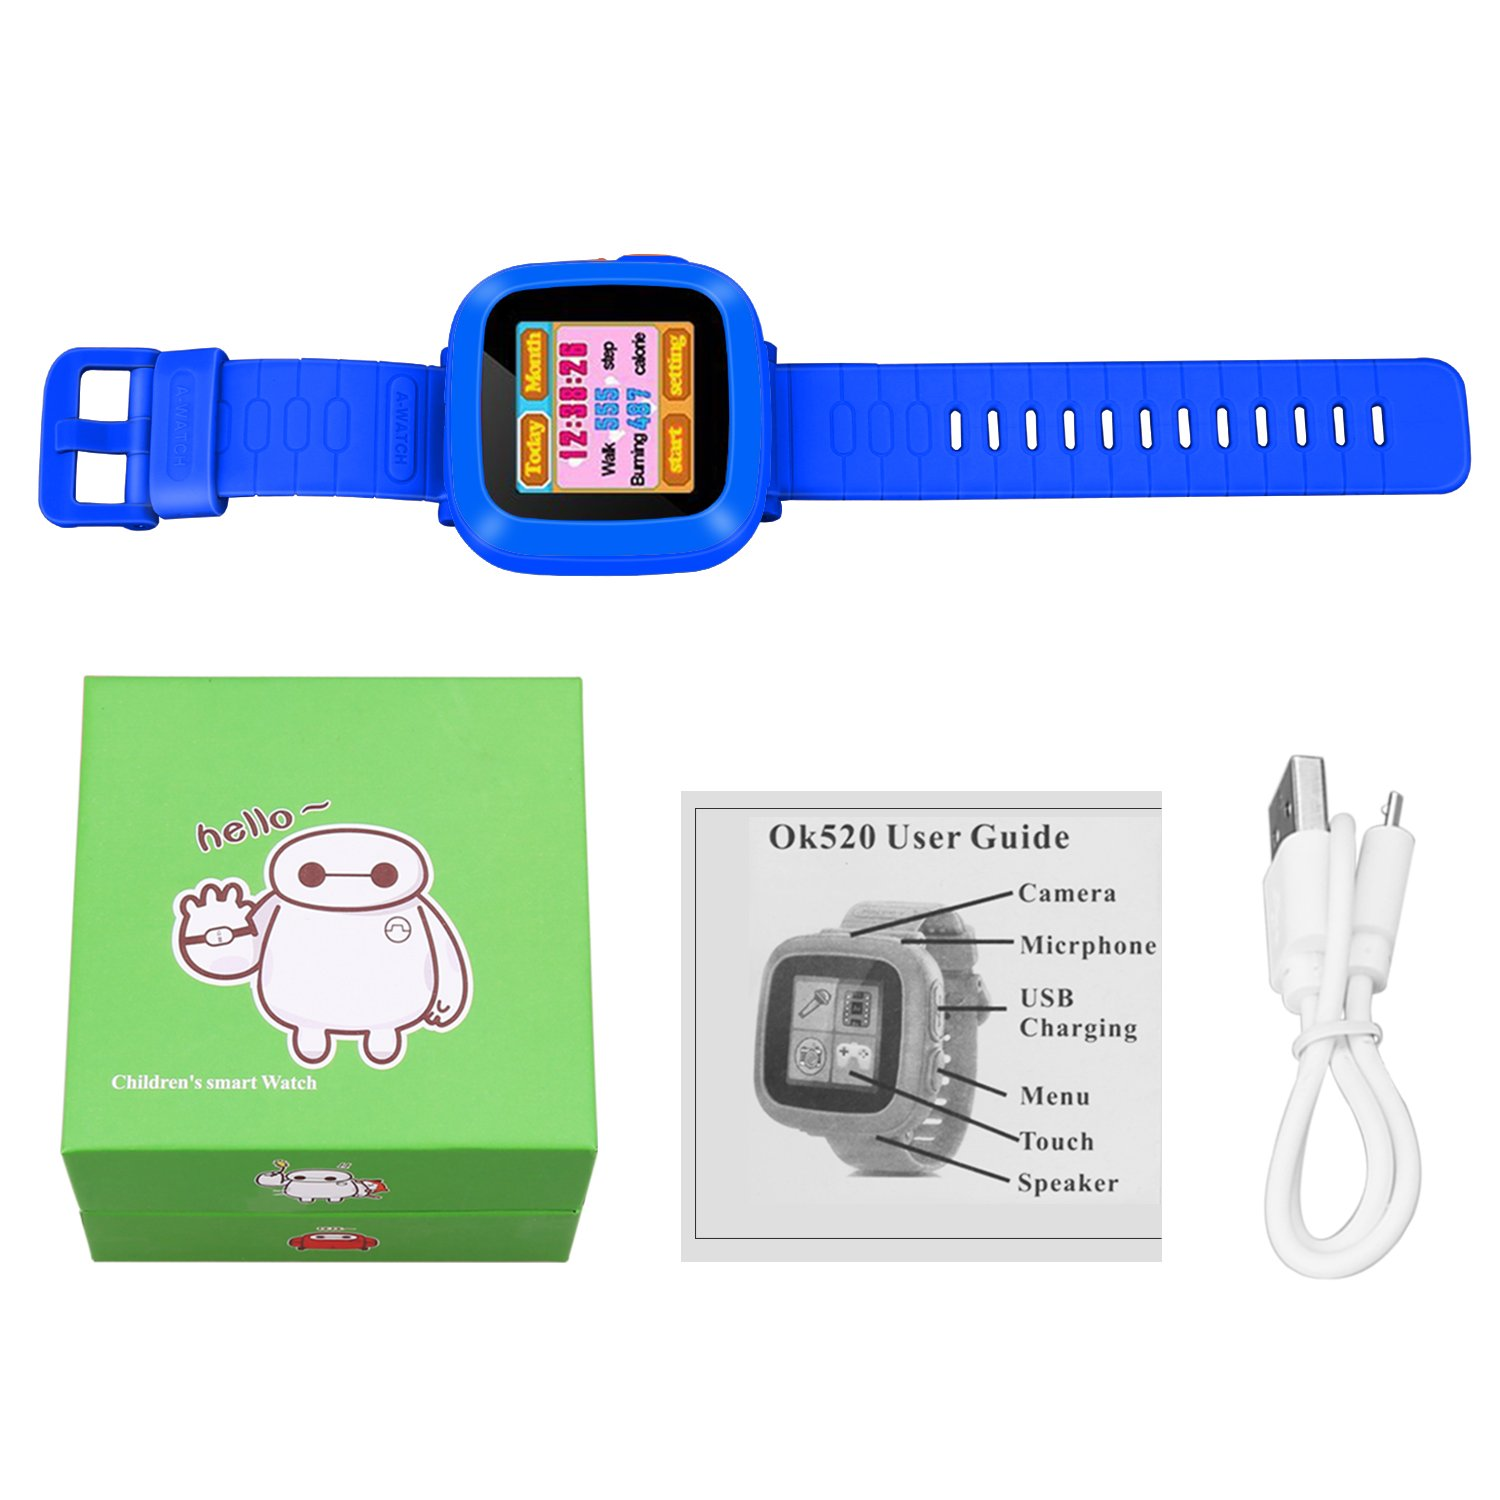 MIMLI Smart Watch for Kids Girls Boys,Smart Game Watch with Camera Touch Screen Pedometer,Kids Smart Watch Perfect Holiday Birthday Toys Gifts (Dark Blue) by MIMLI (Image #6)